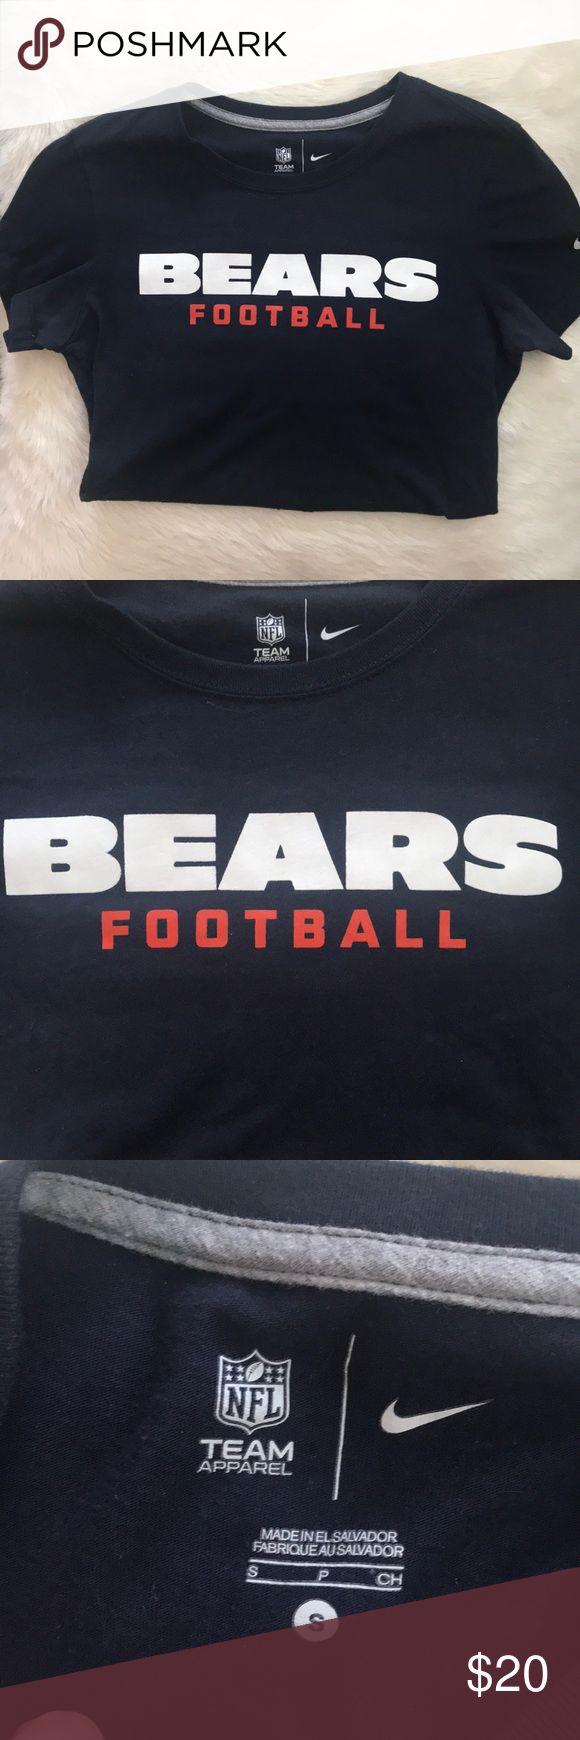 Nike NFL Chicago Bears T-shirt Nike/// navy NFL Chicago Bears t-shirt! This is a women's fit, so it fits tight!! Size small. In great condition! If you have any other questions, please do not hesitate to ask:) Nike Tops Tees - Short Sleeve